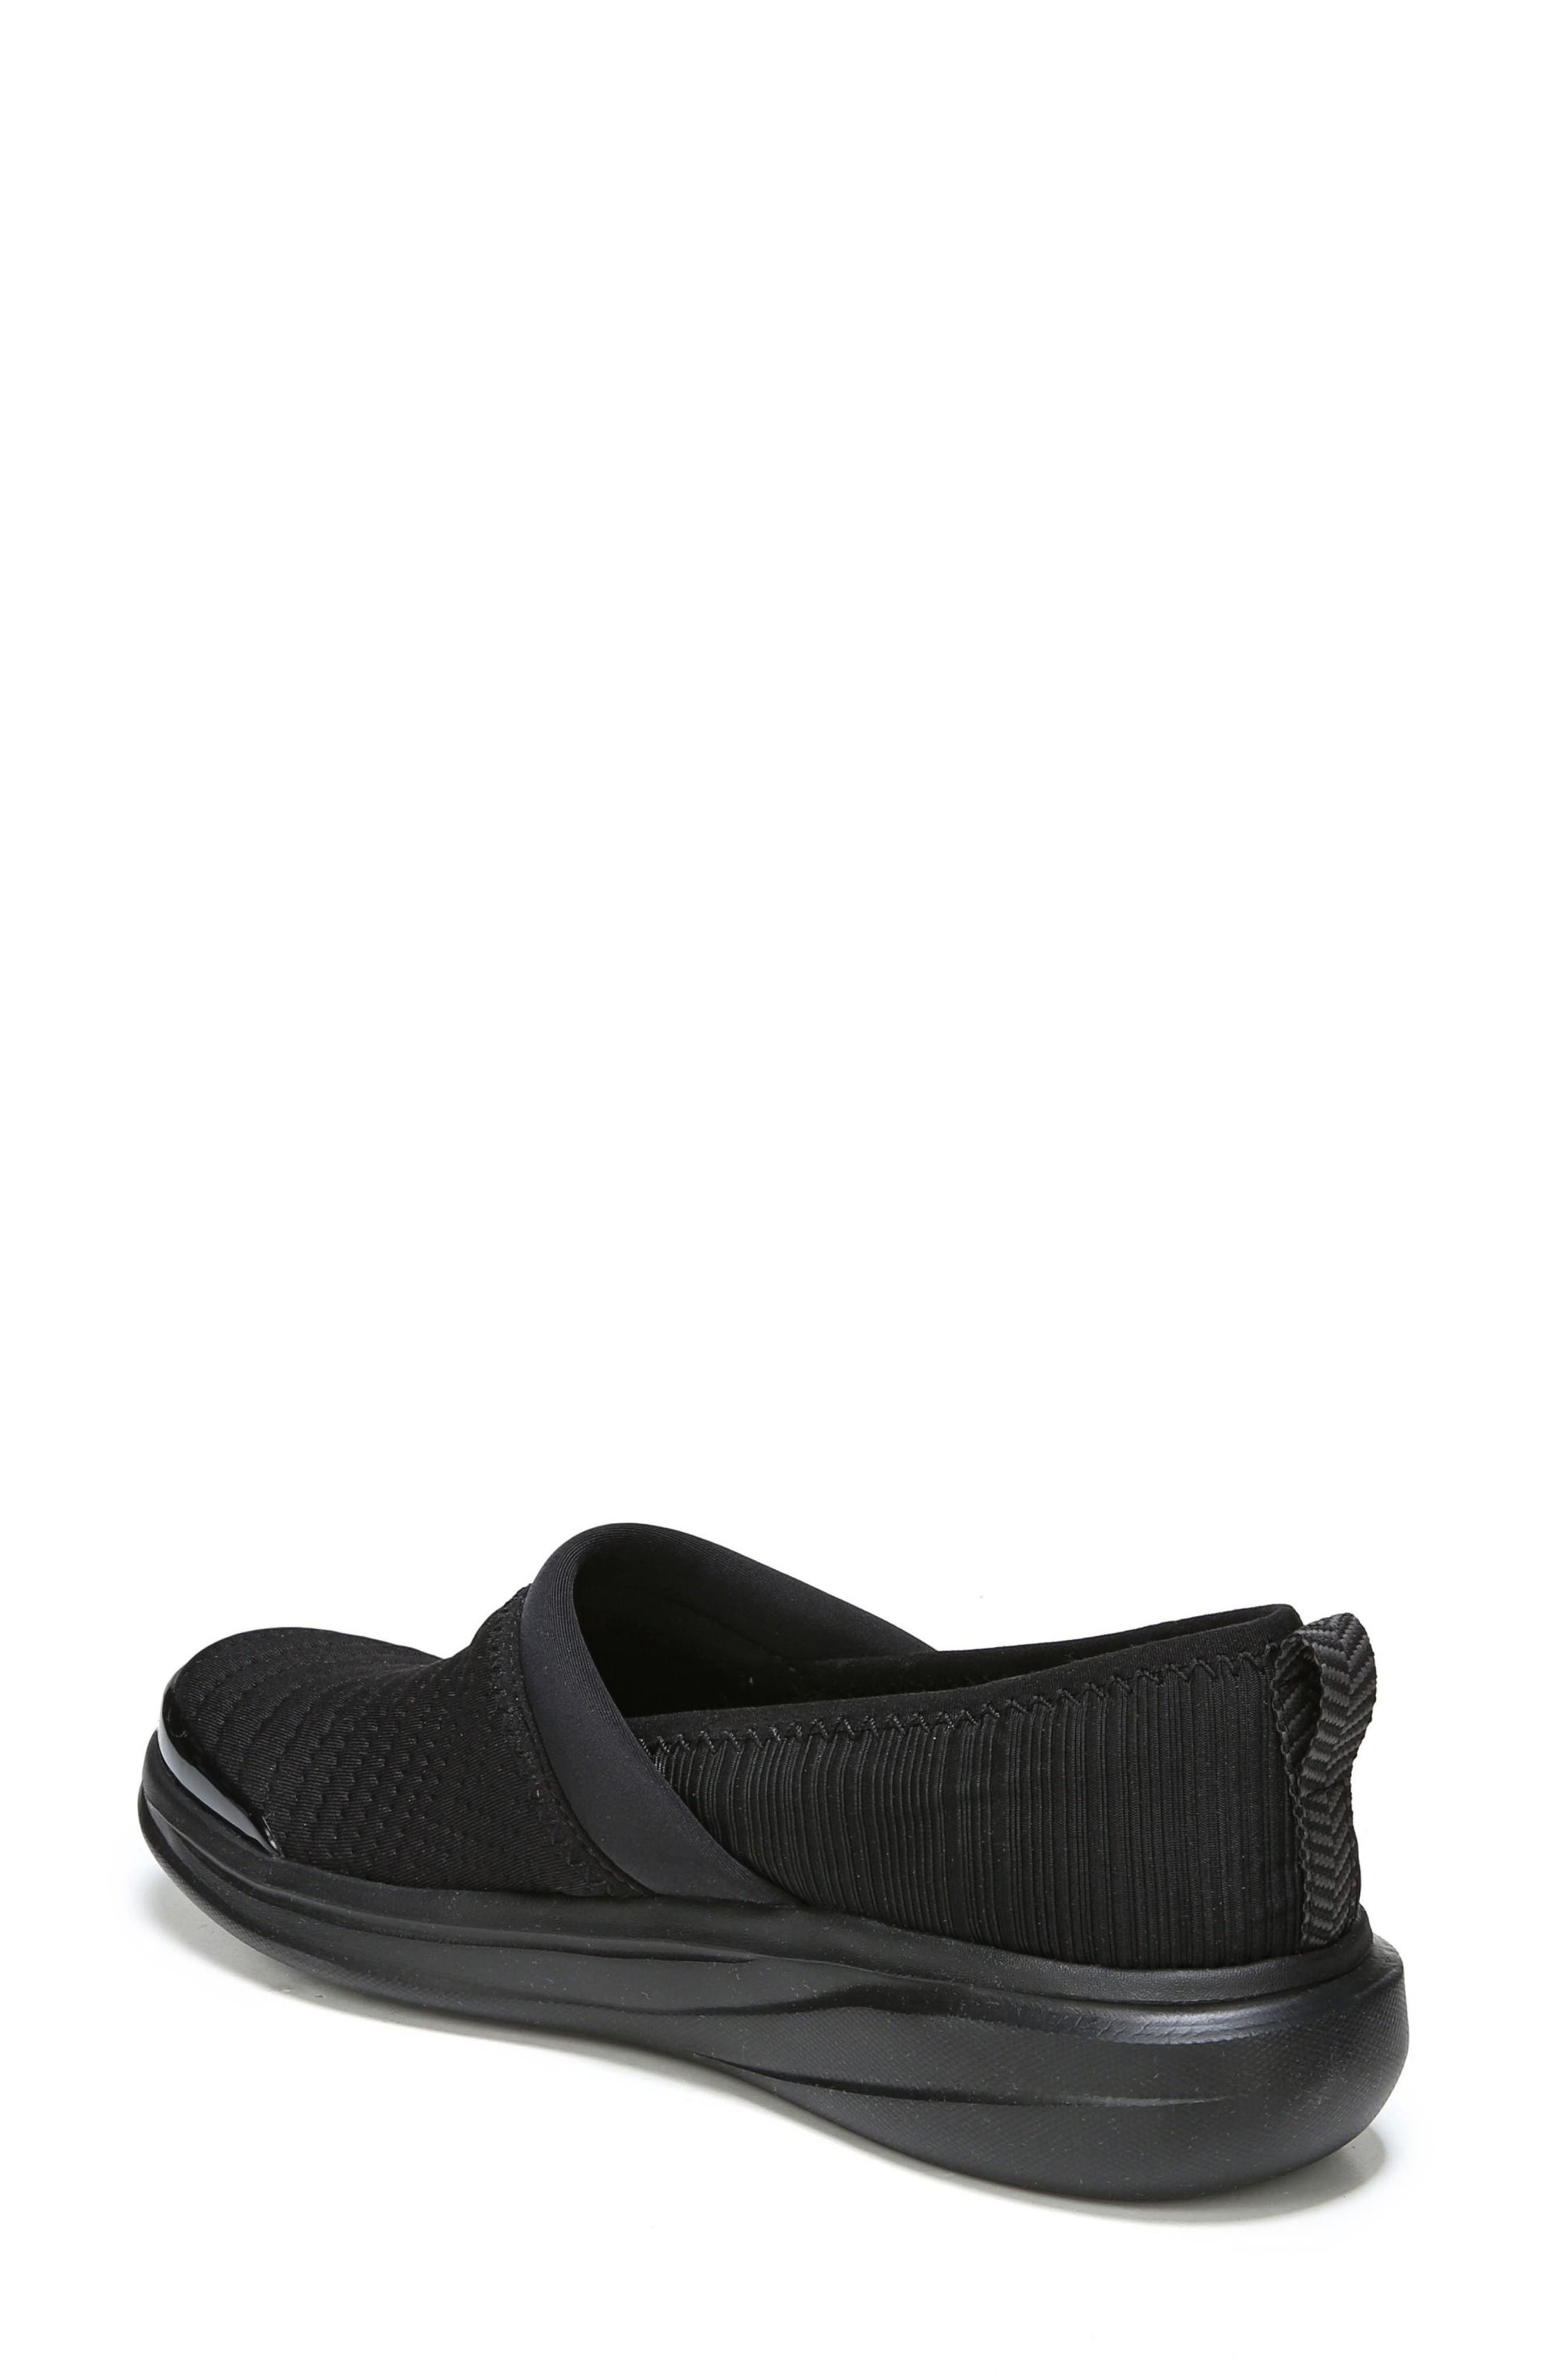 Coco Slip-On Sneaker,                             Alternate thumbnail 2, color,                             Black Fabric